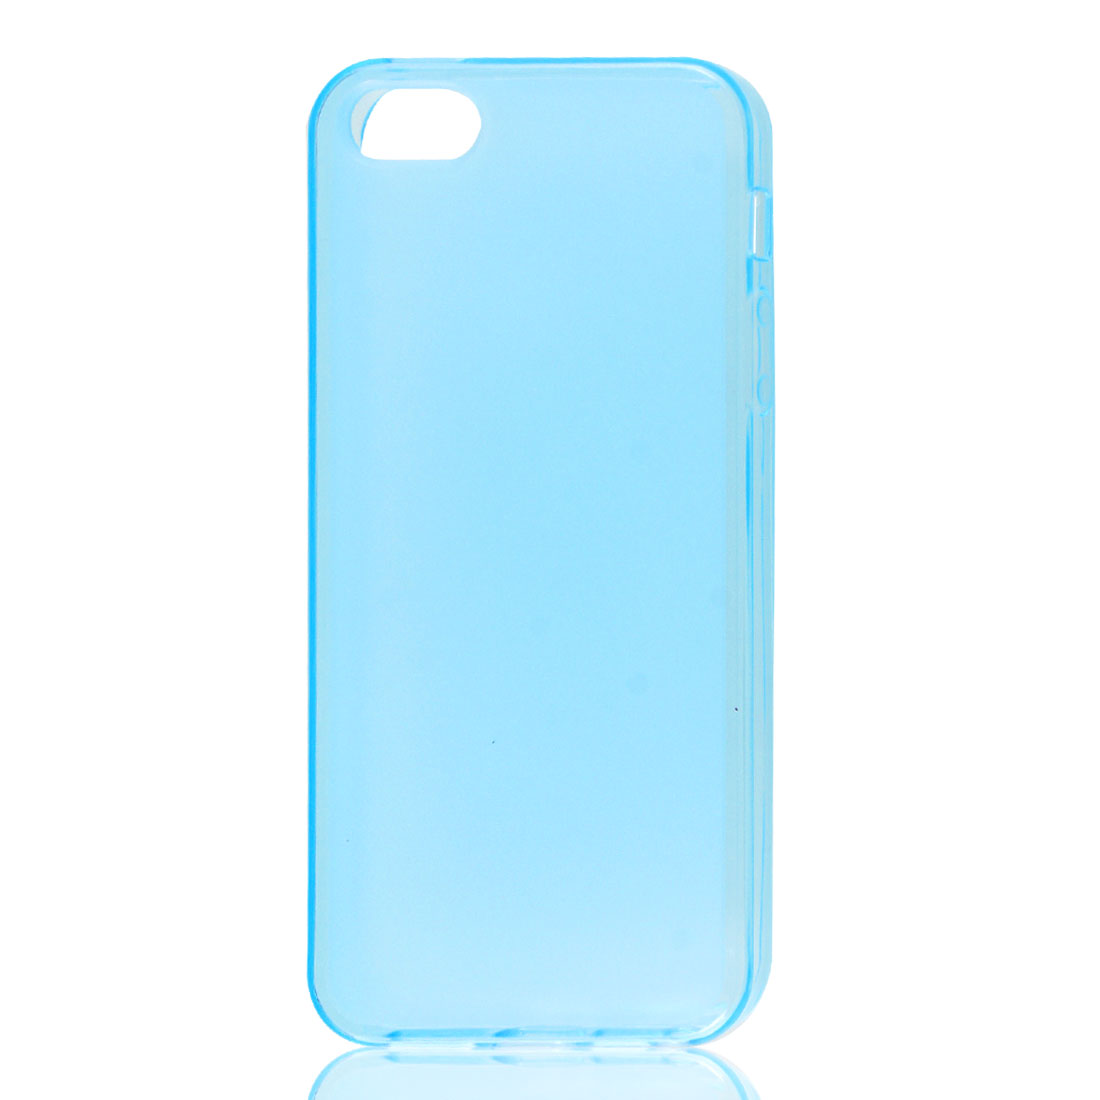 Teal Blue Soft Plastic TPU Protective Case Skin Cover for iPhone 5 5G